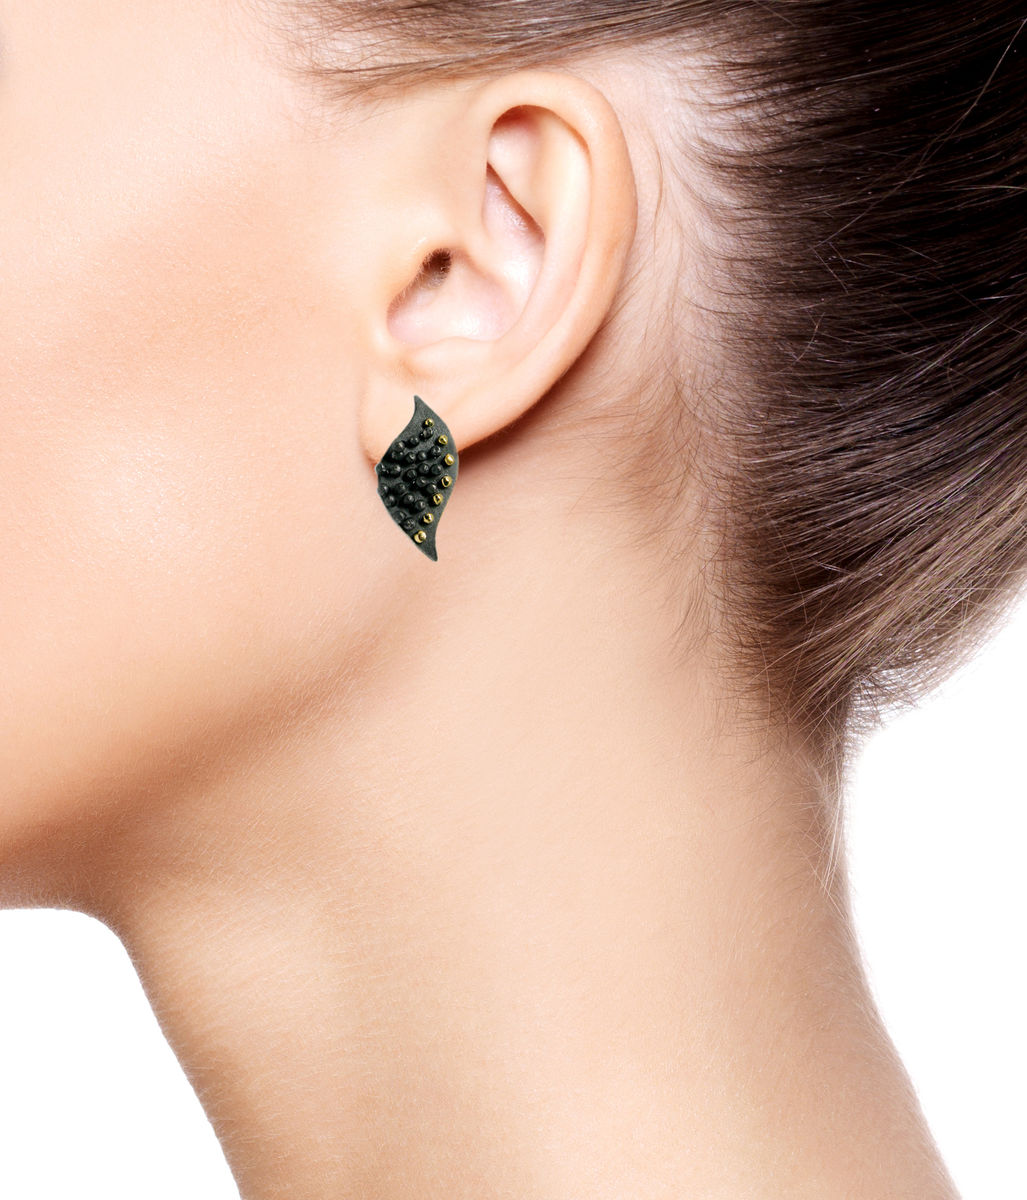 Mariposa Earrings Black with 14k gold - product images  of